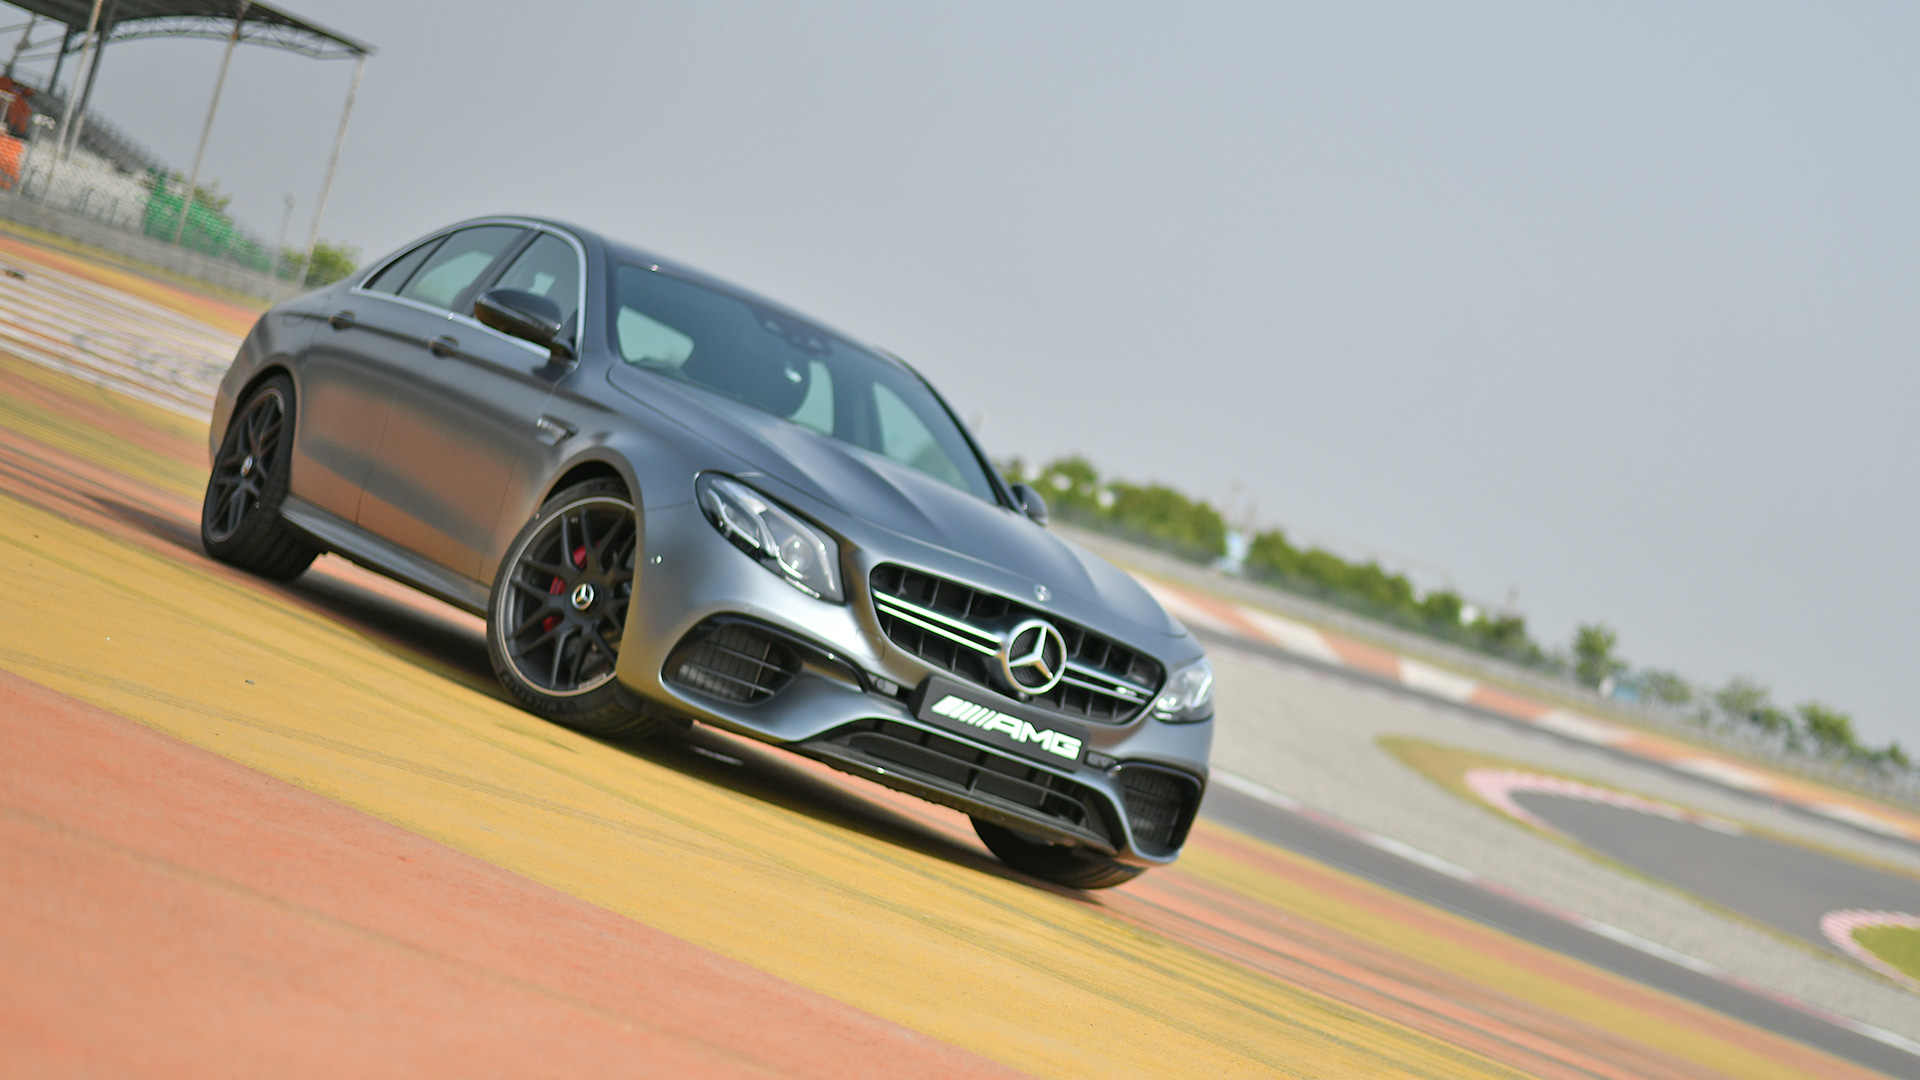 Mercedes Benz E63 AMG 2018 Price Mileage Reviews Specification